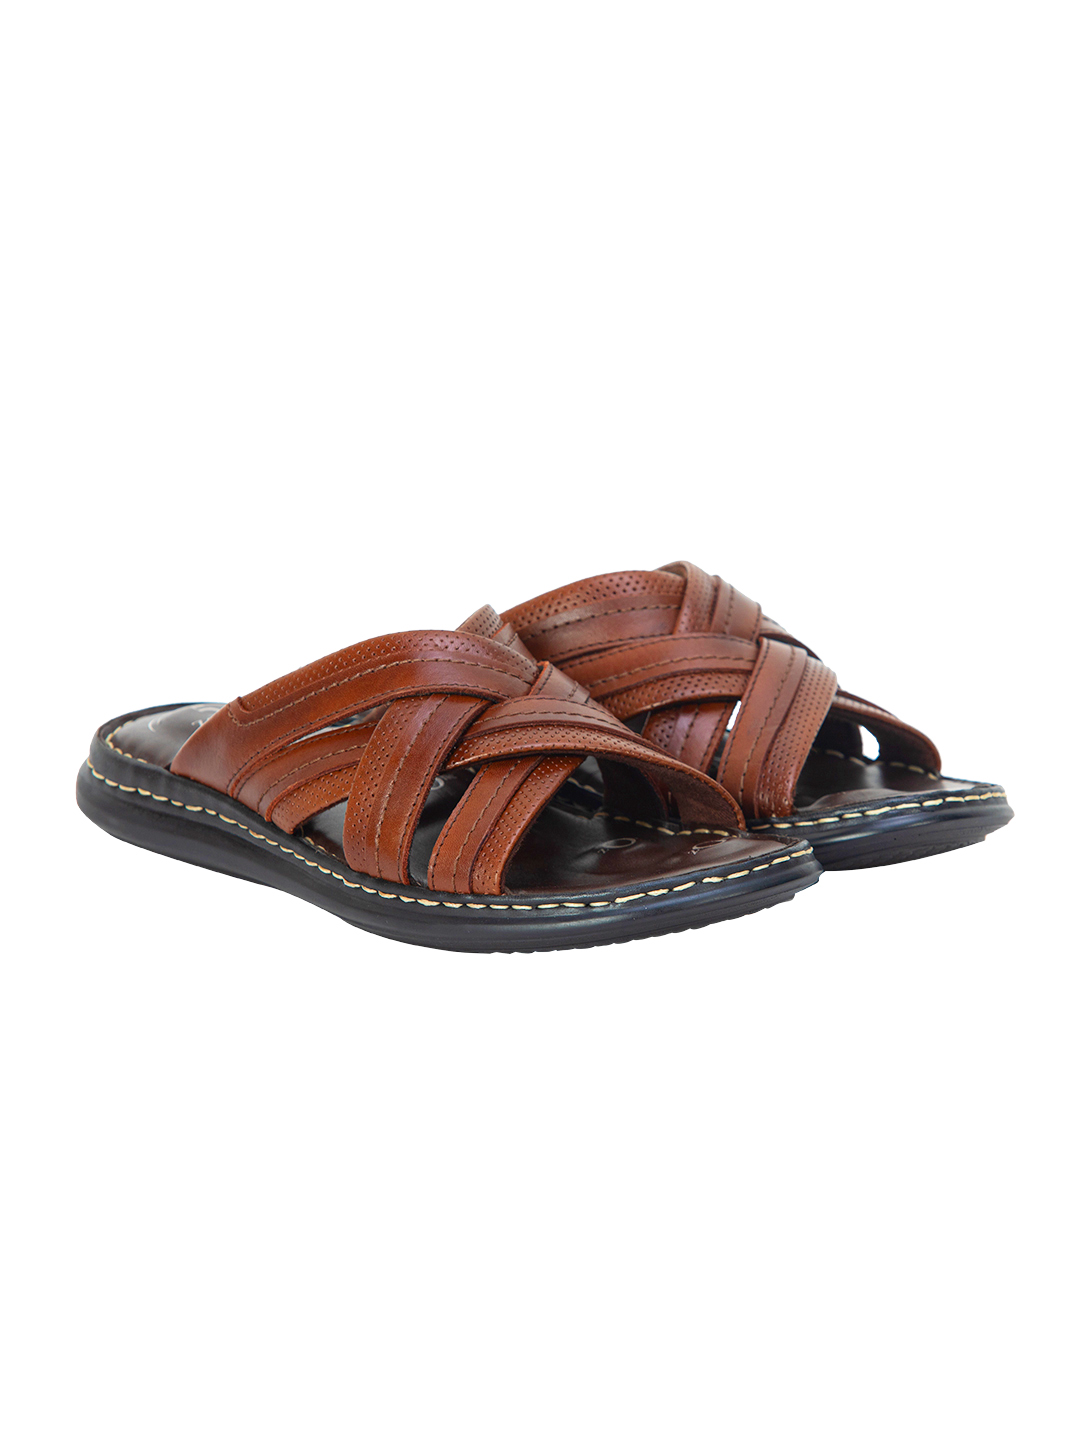 Buy VON WELLX GERMANY COMFORT BROWN RIVEL SLIPPERS In Delhi